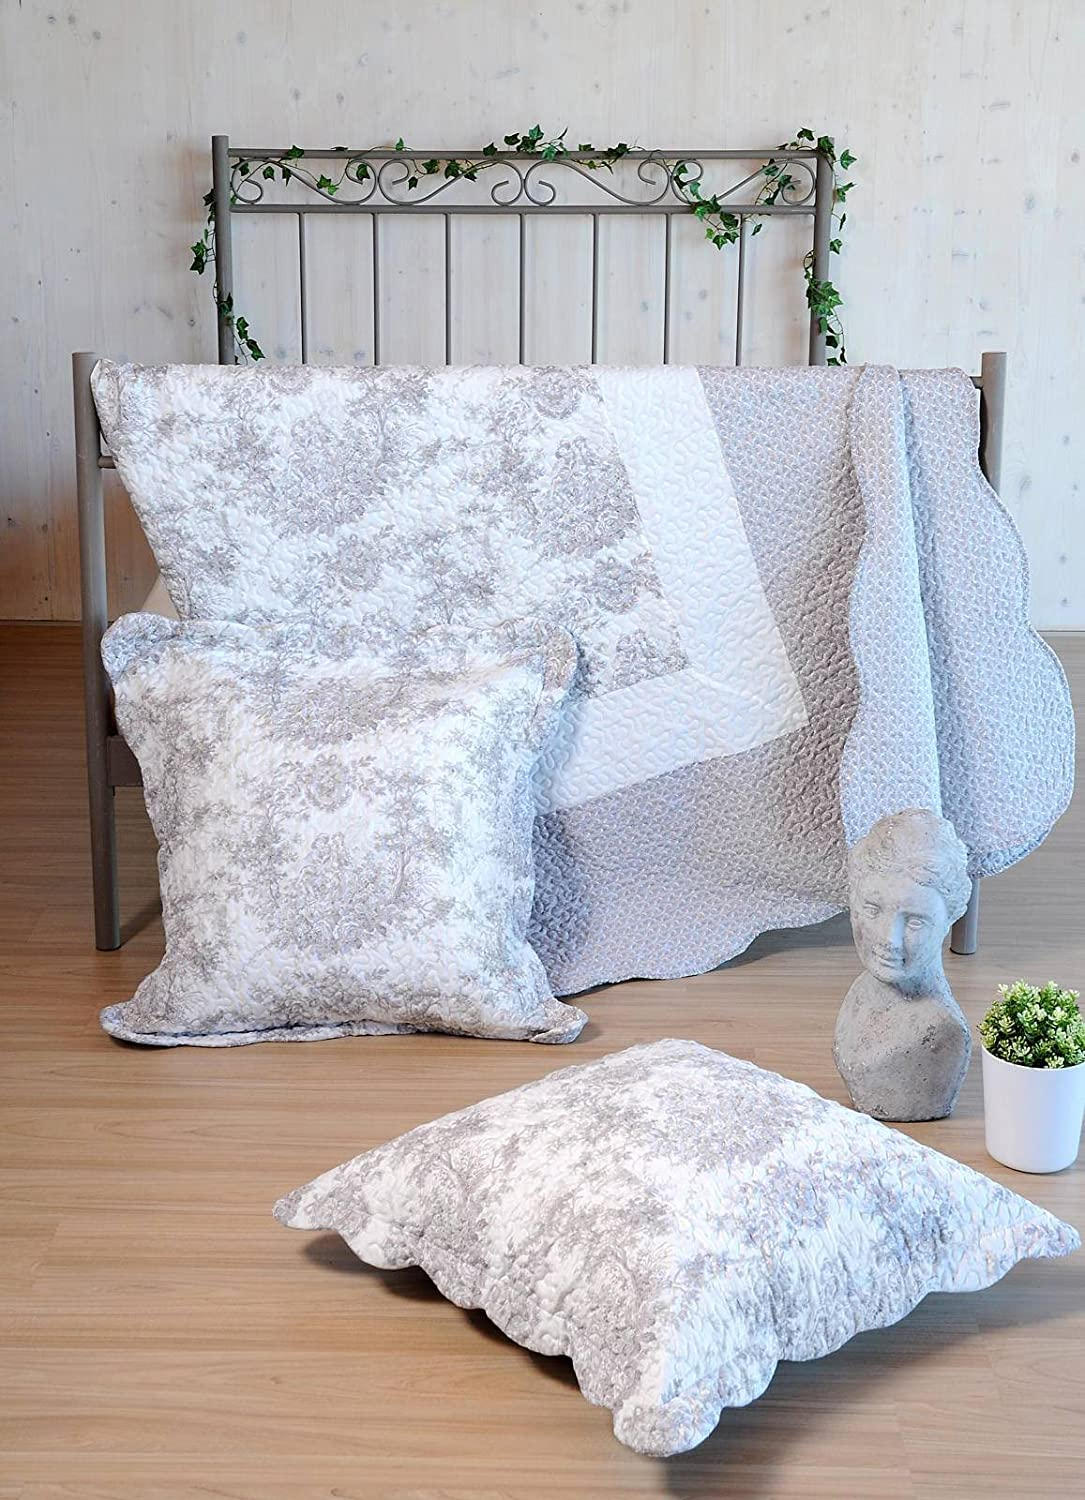 Lovely Casa Mitra Boutis avec 2 Taies, Polyester, Gris, 240 x 220 cm P48380001